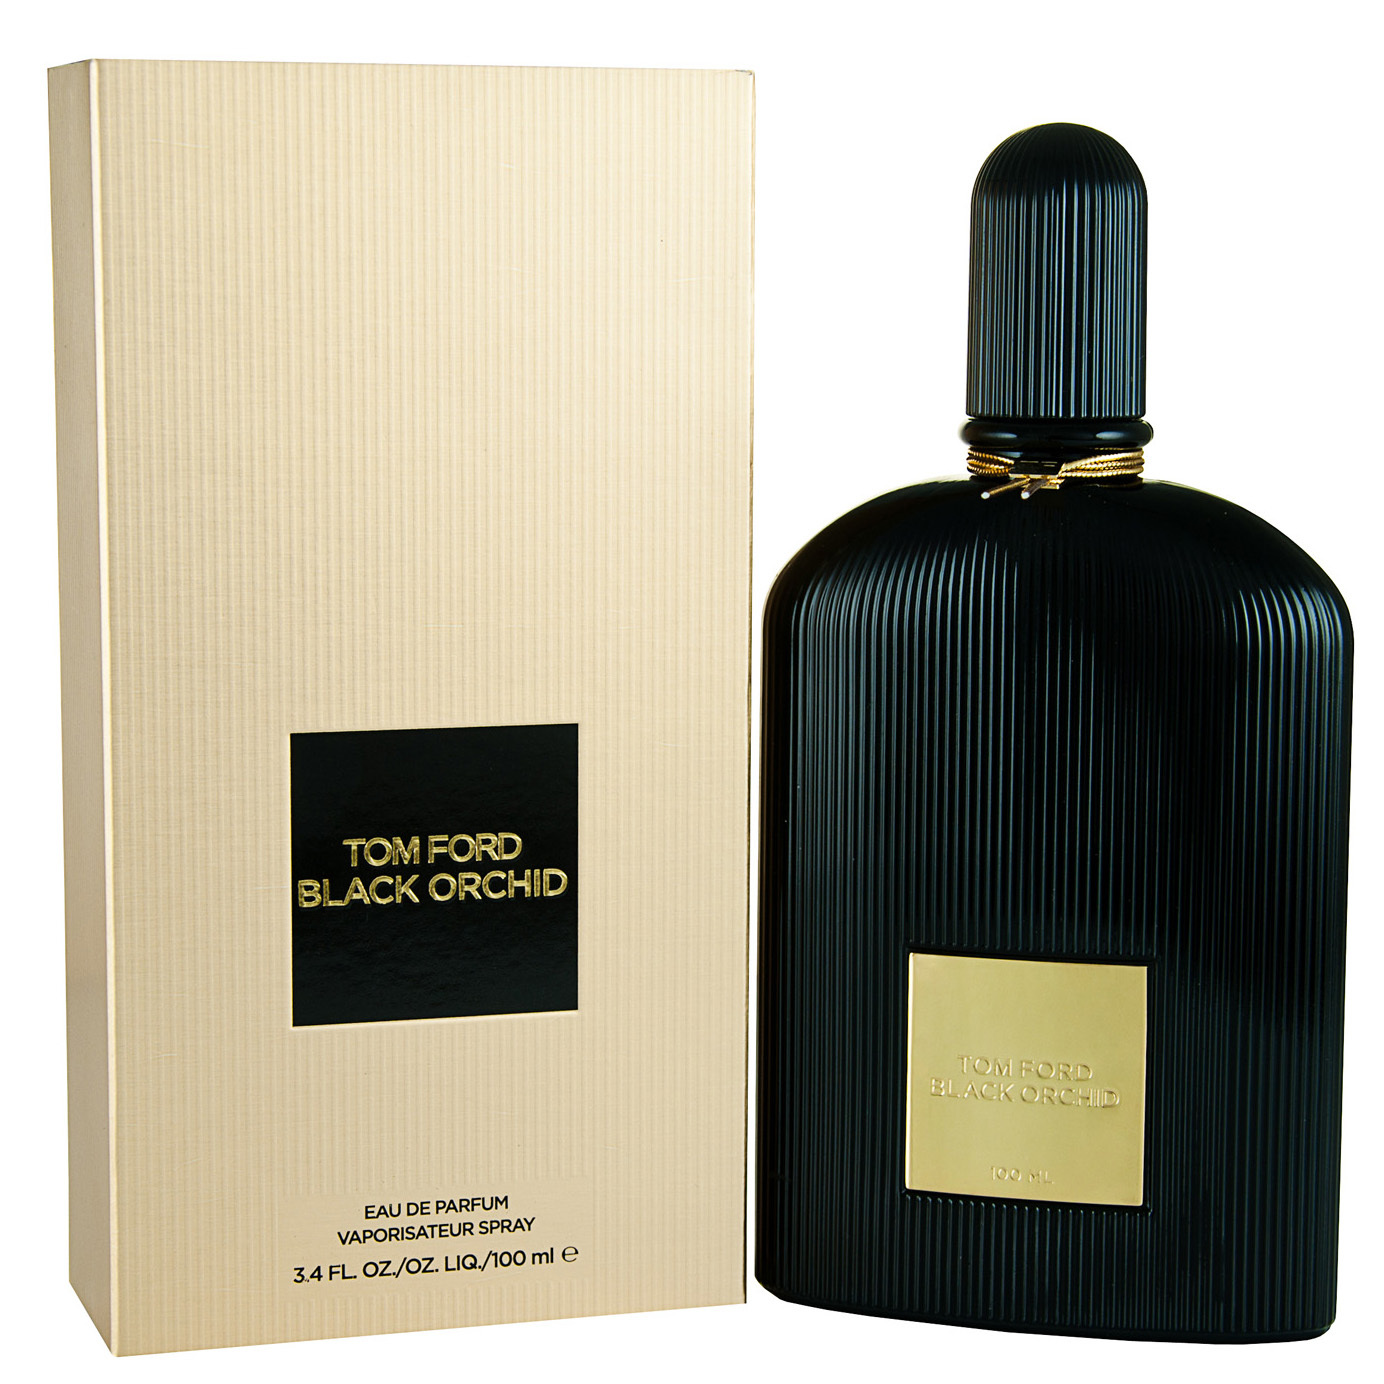 tom ford black orchid eau de parfum spray for women new fragrance 100ml in bo. Cars Review. Best American Auto & Cars Review